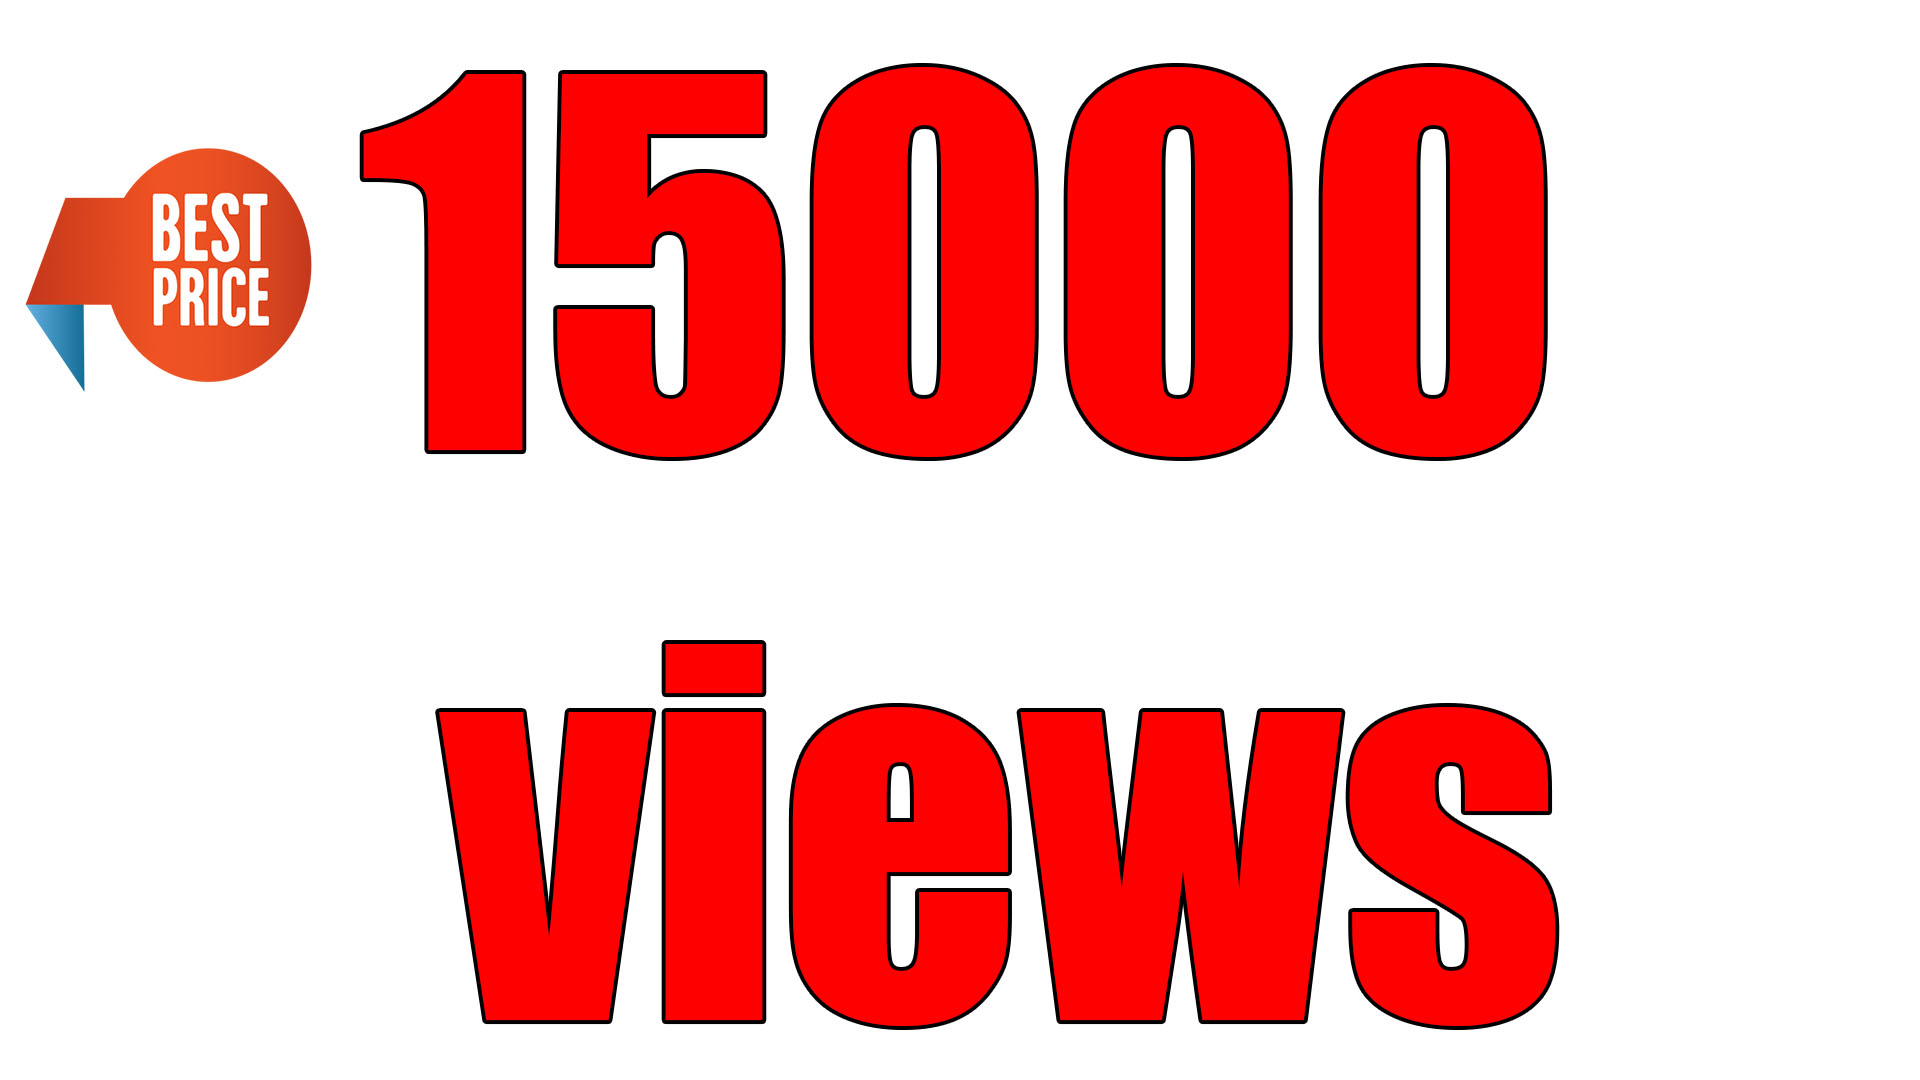 I will deliver to you 15000 youtube views. The best price!